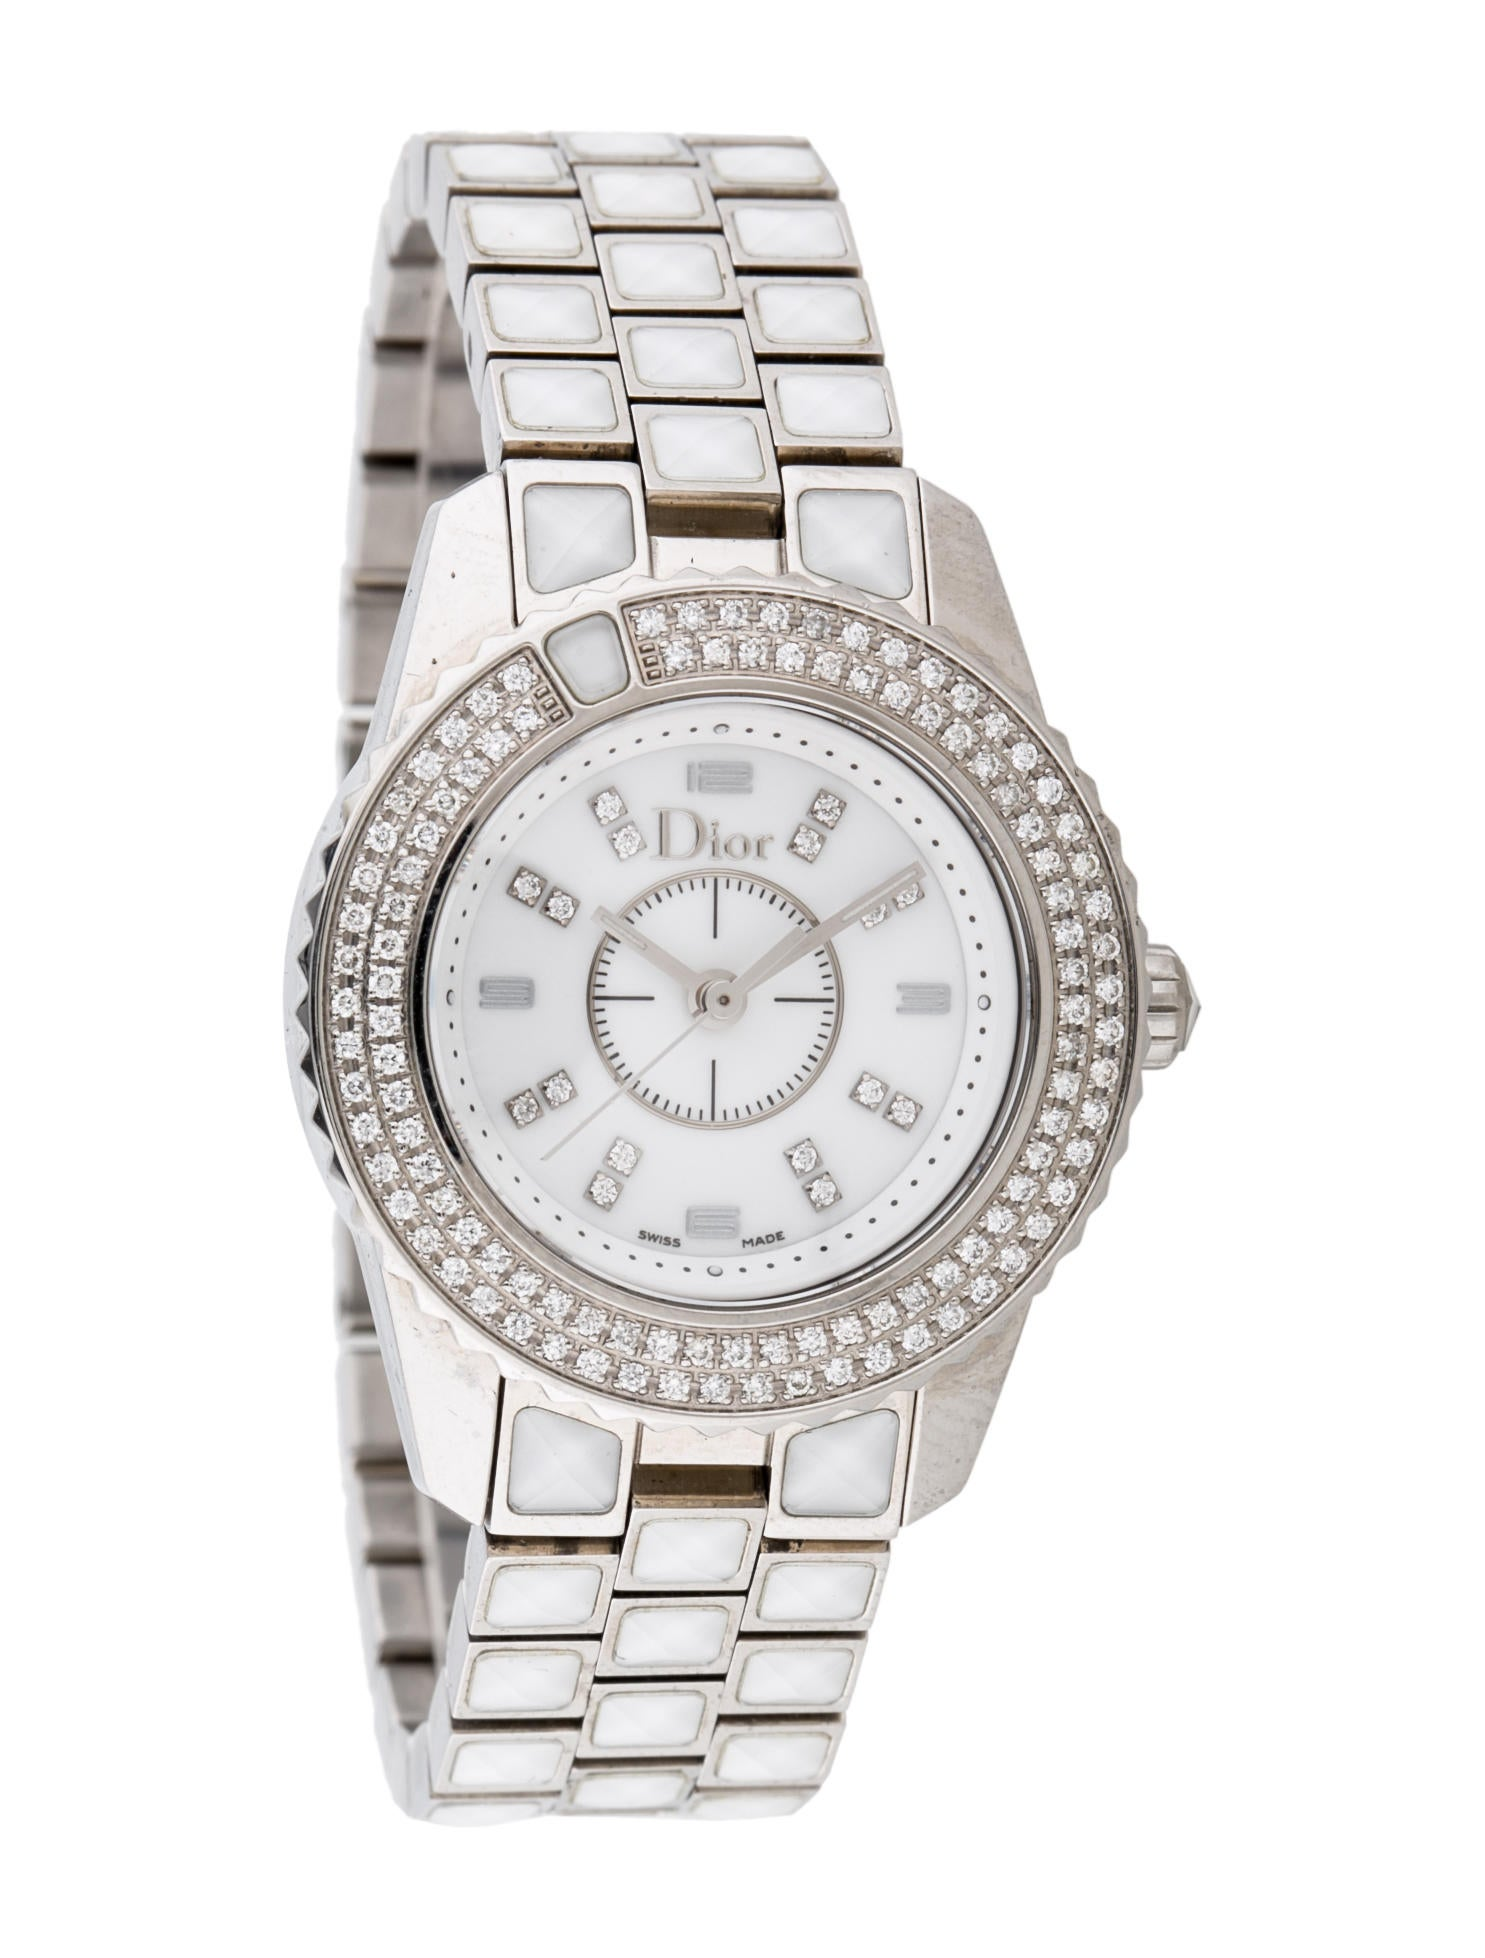 Christian dior christal diamond watch bracelet chr30979 the realreal for Christian dior watches